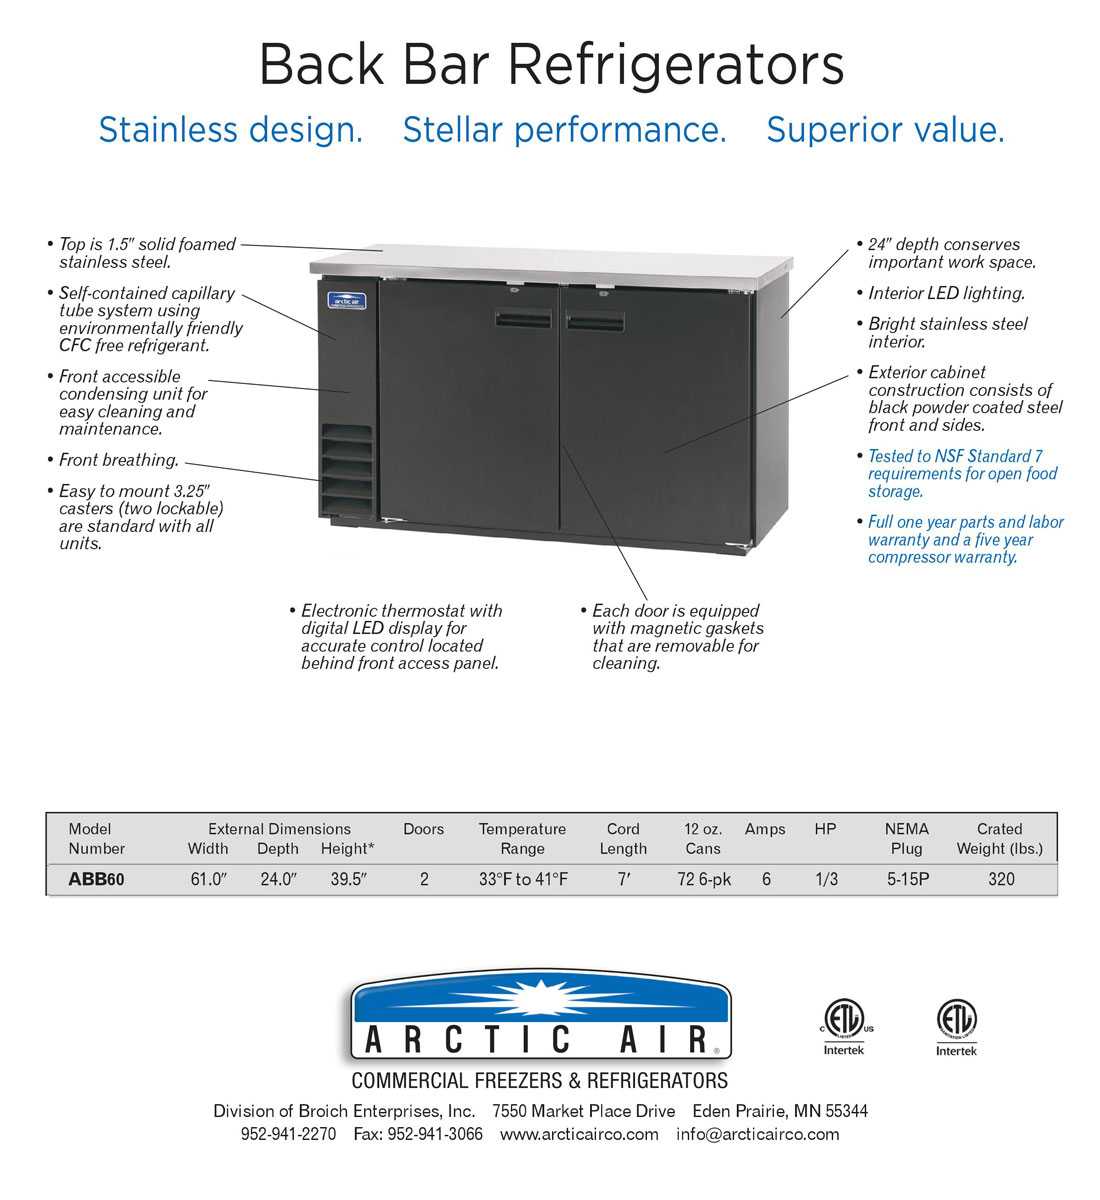 61 Inch Wide Back Bar Refrigerator with 2 Solid Doors and Stainless Steel Top (Arctic Air ABB60) Specification Image